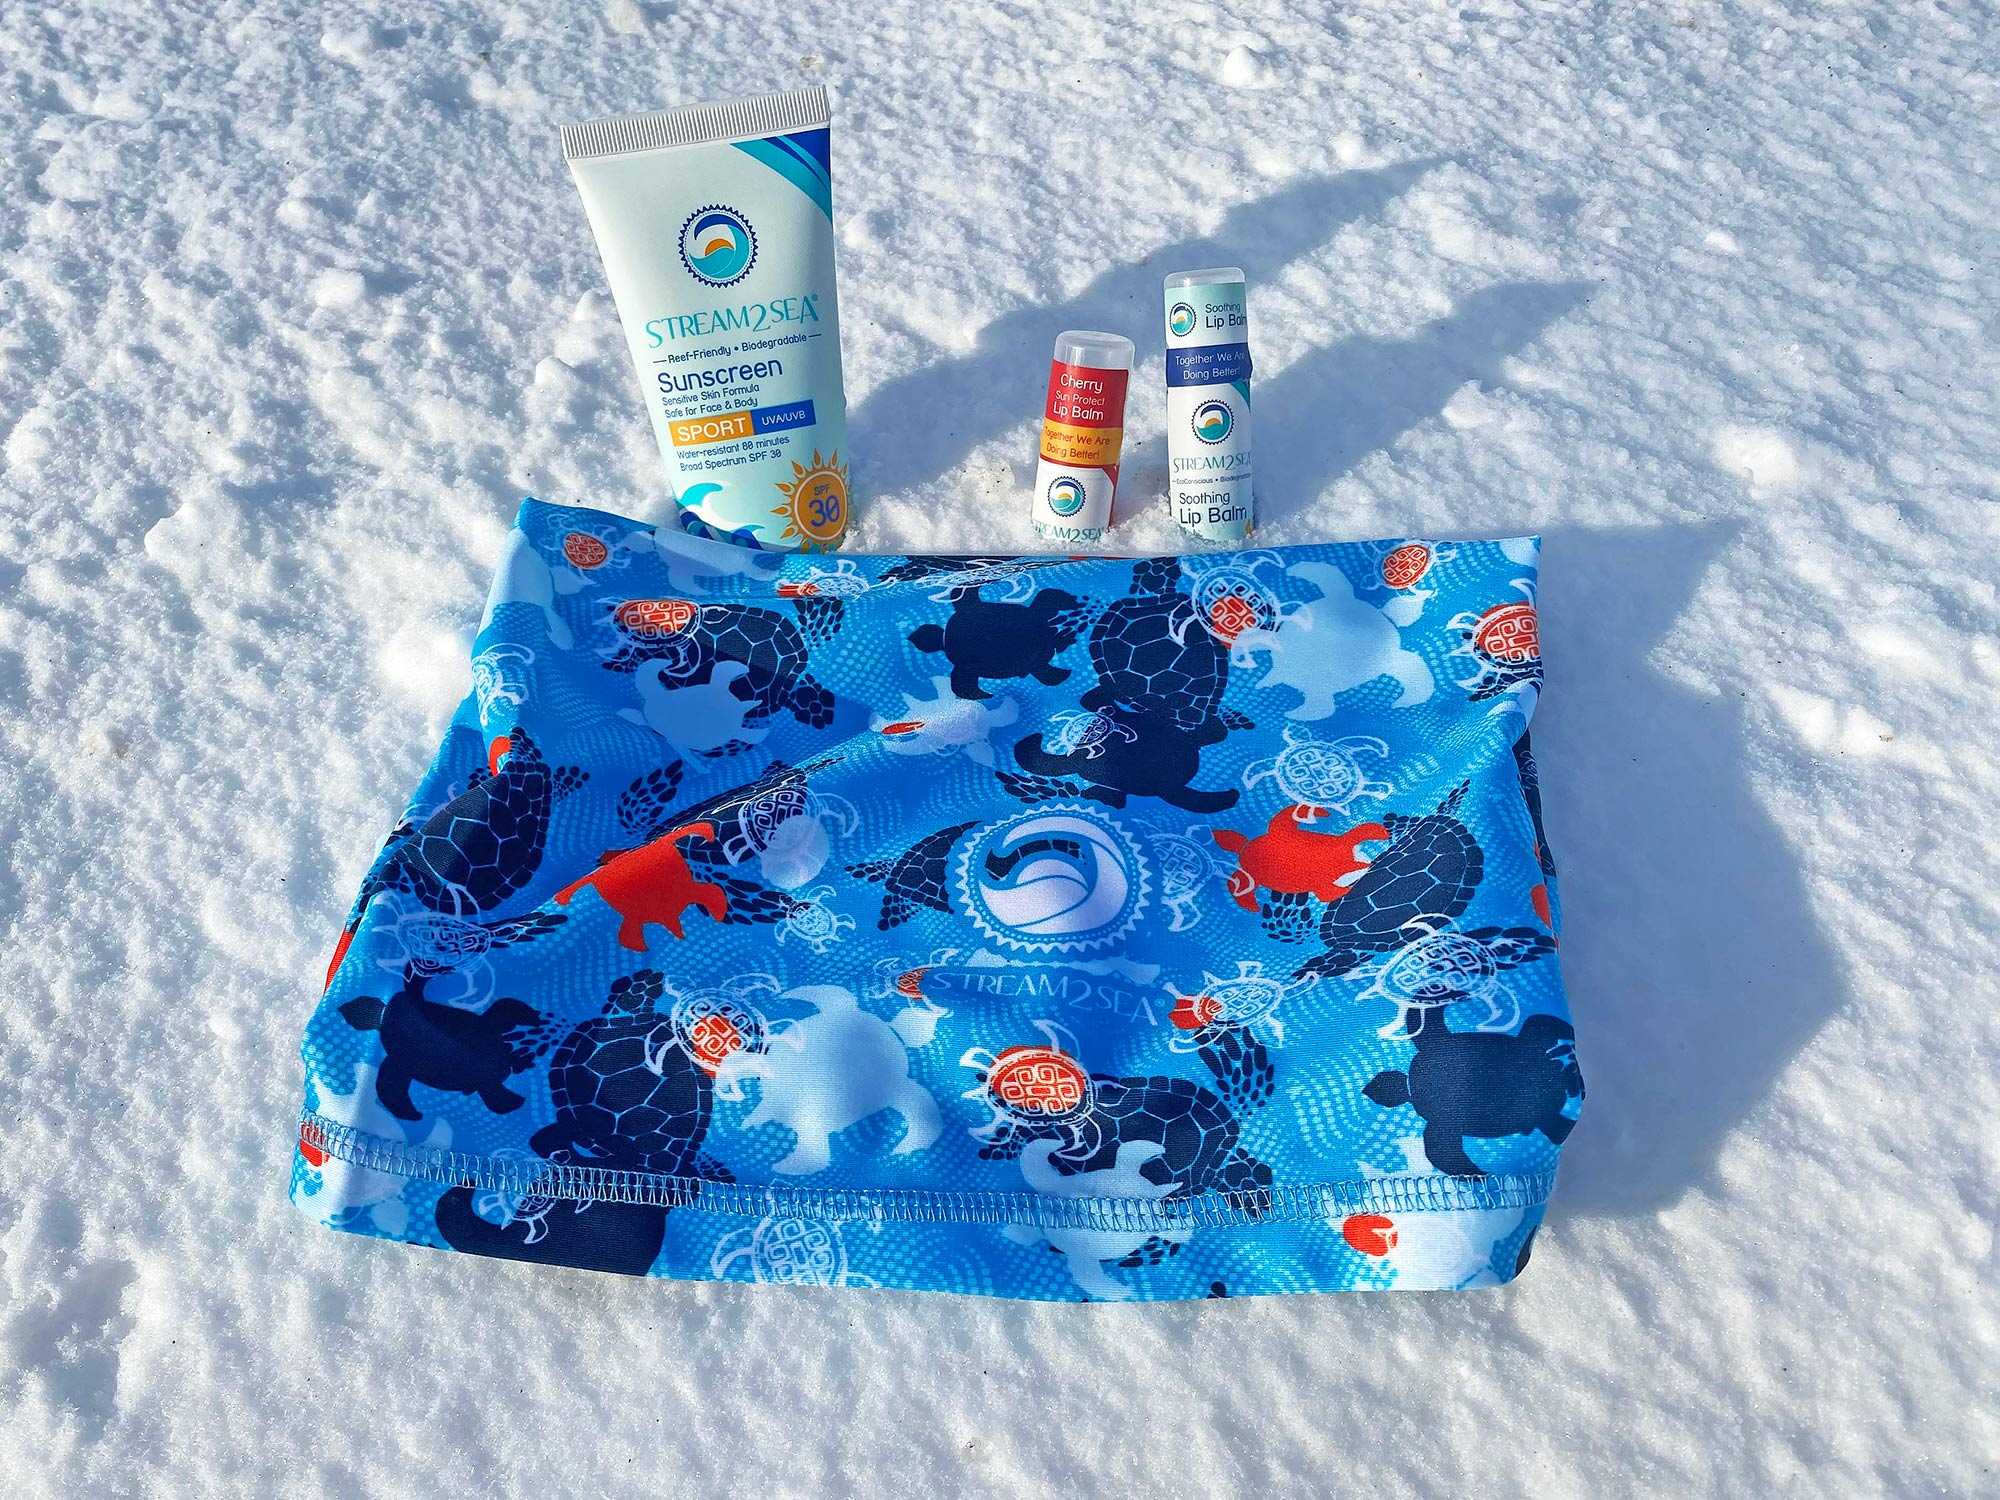 Stream2Sea Products in the Snow